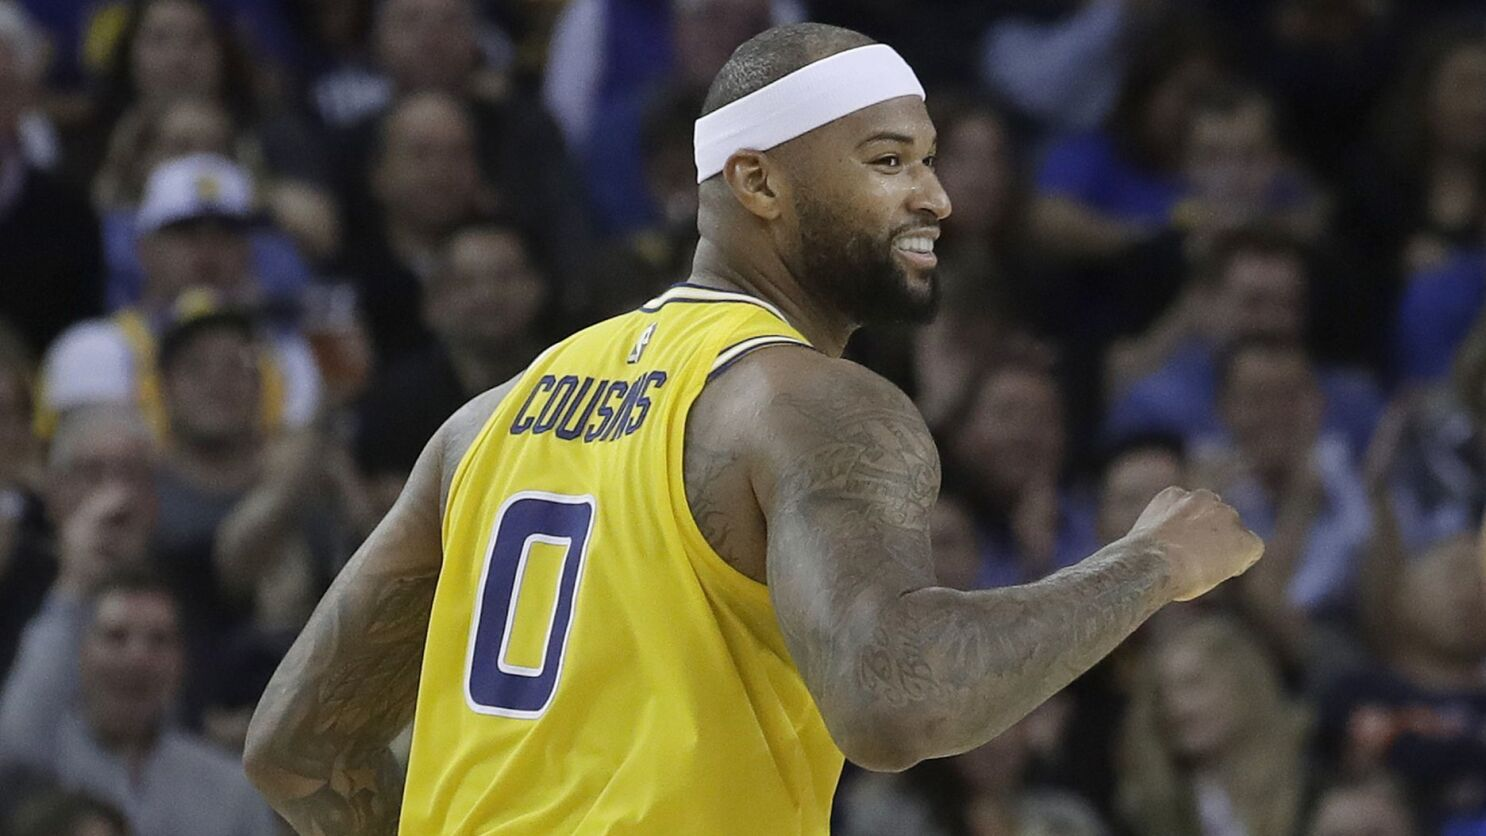 Lakers center DeMarcus Cousins has a torn ACL in left knee